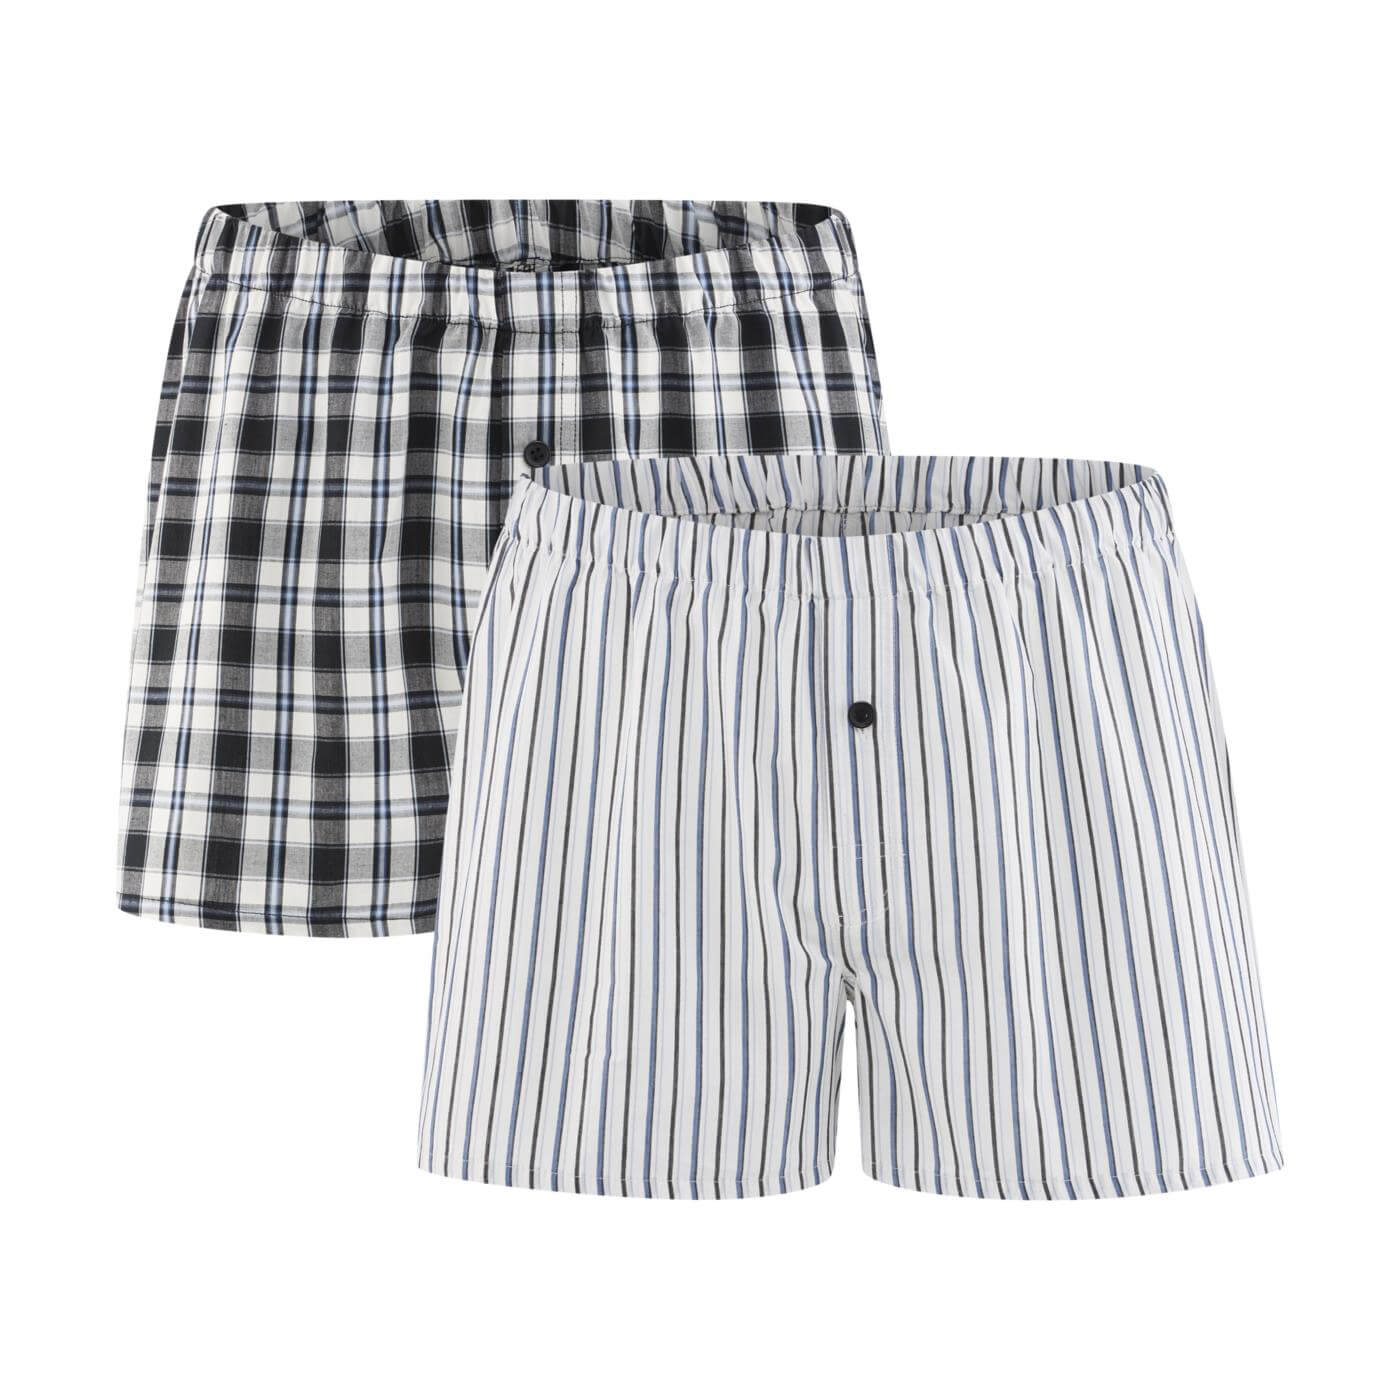 Boxer shorts, pack of 2